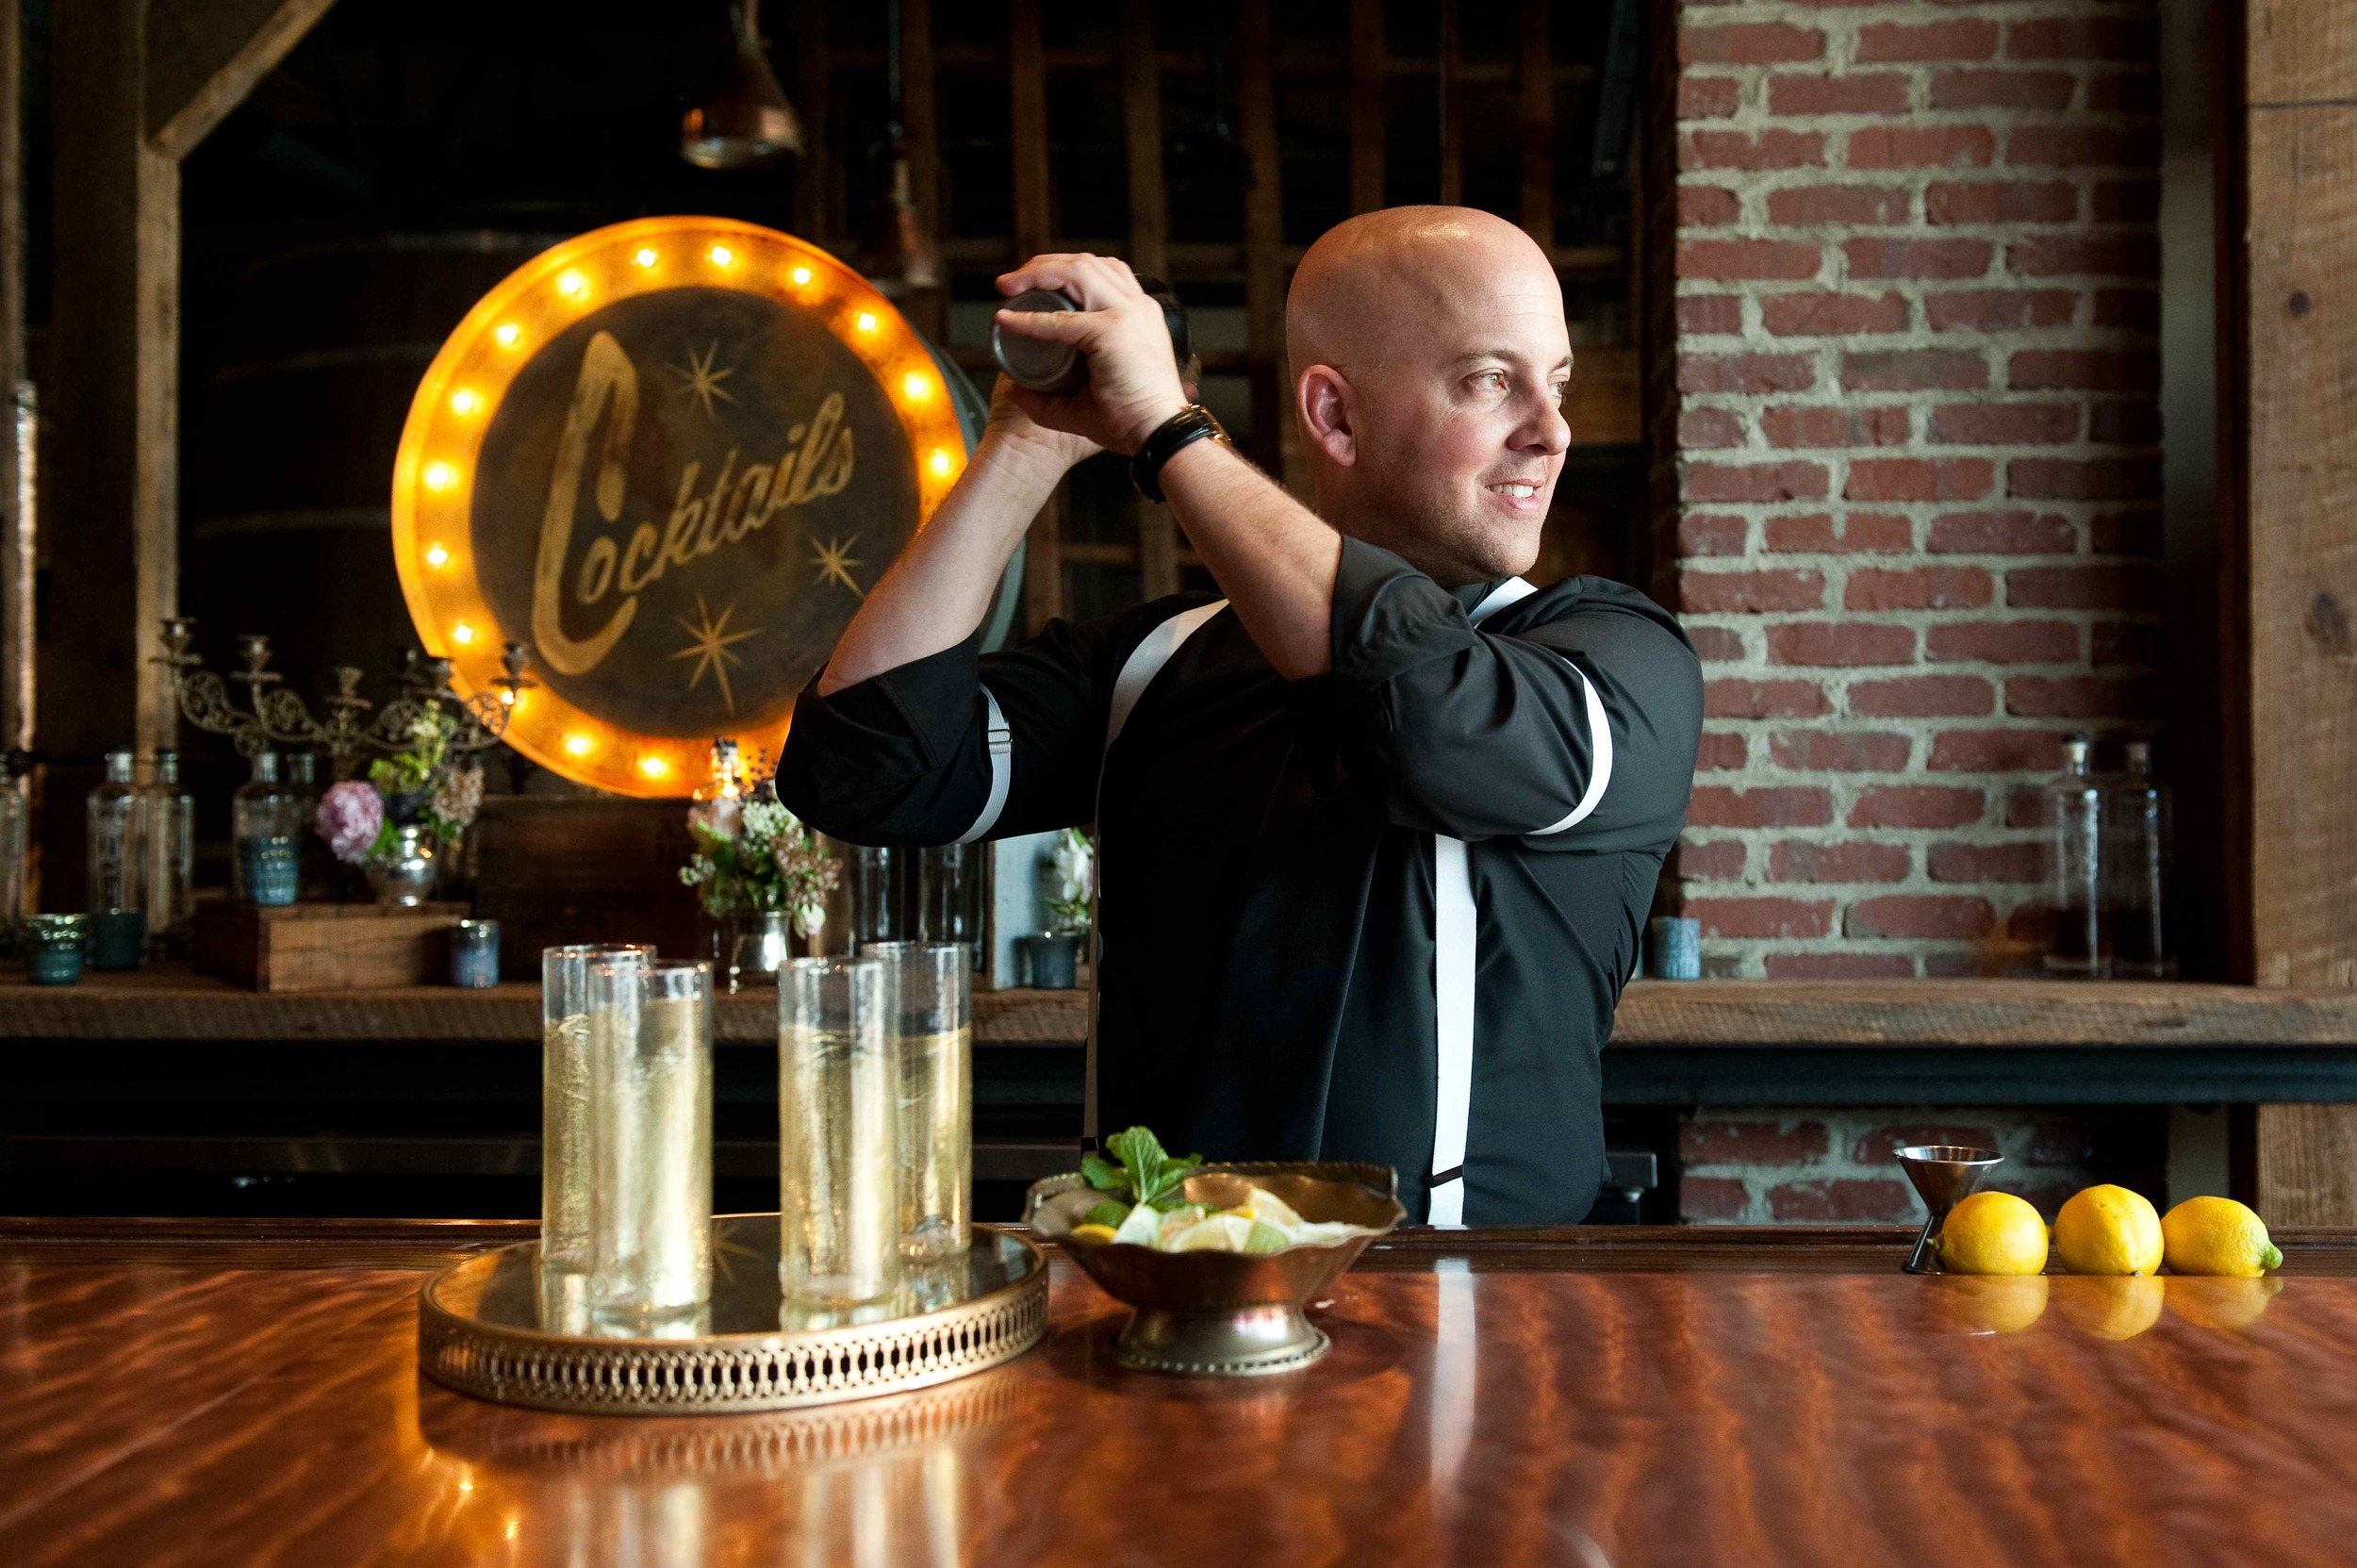 {My handsome hubby modeling as the bartender}